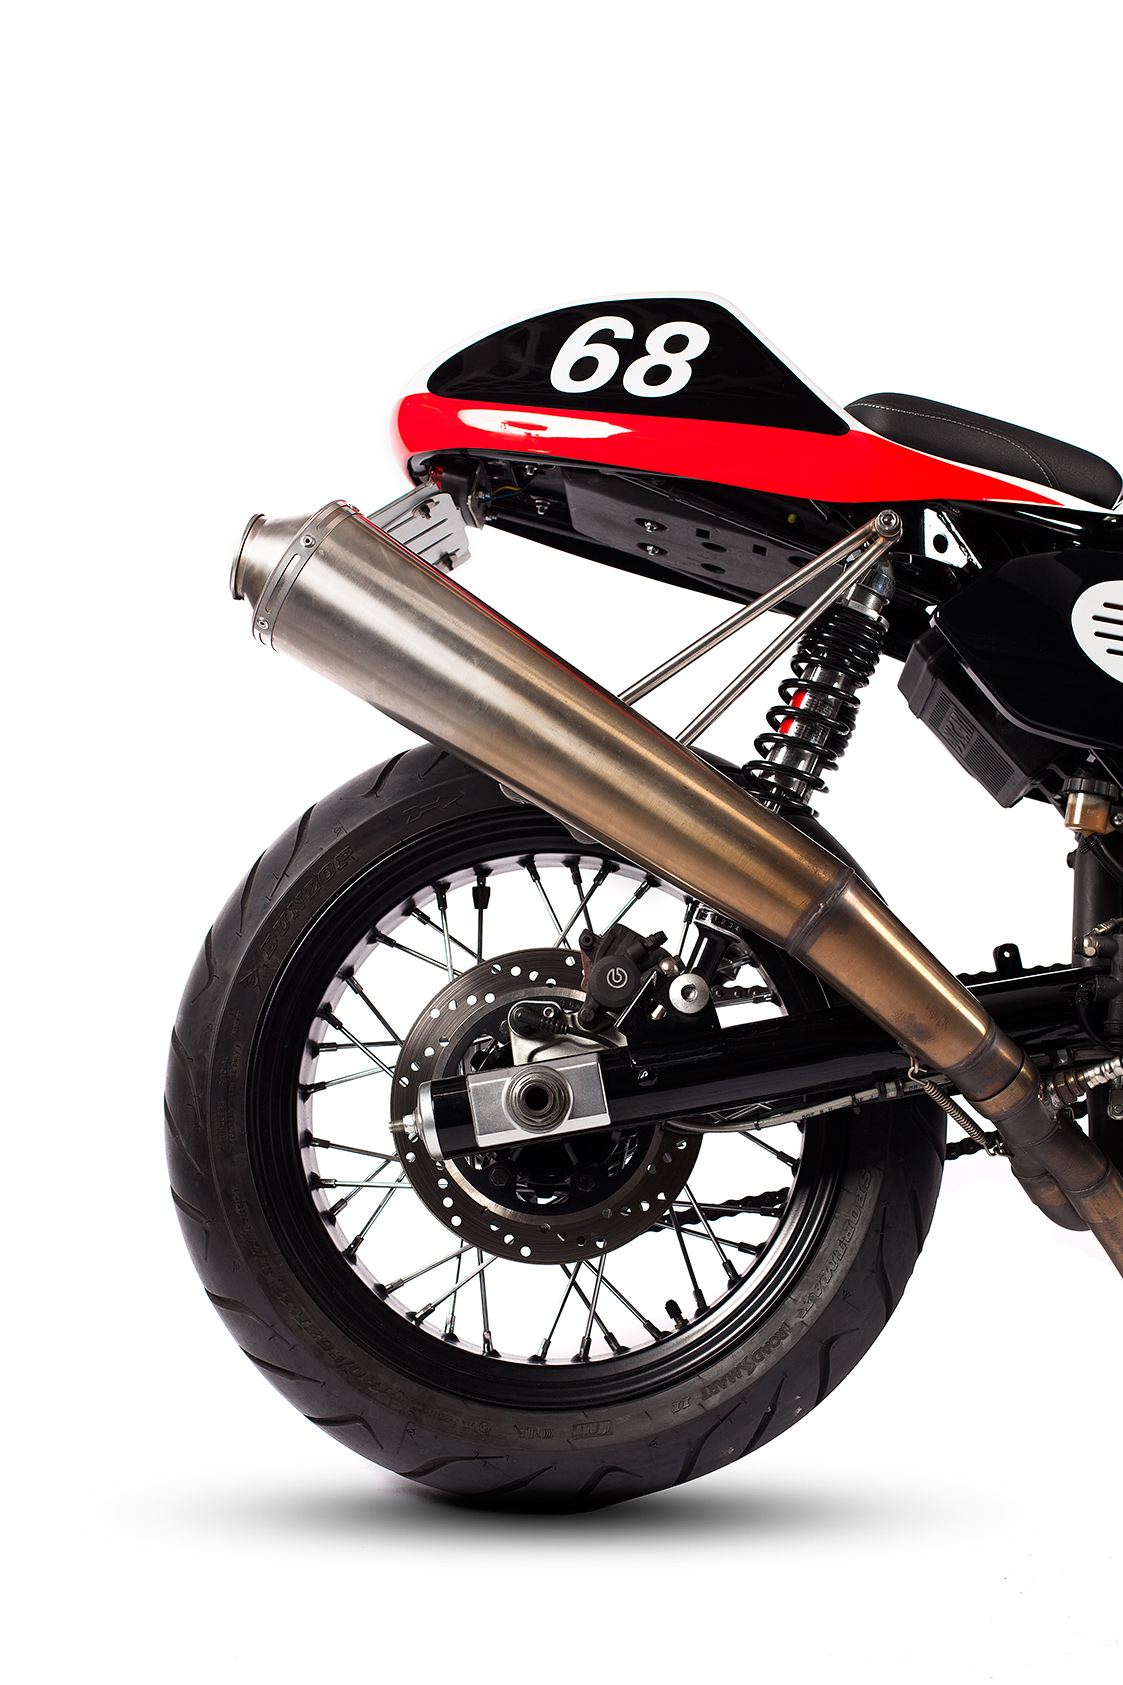 maria_motorcycles_ducati_gt1000_bloodyfang_3203